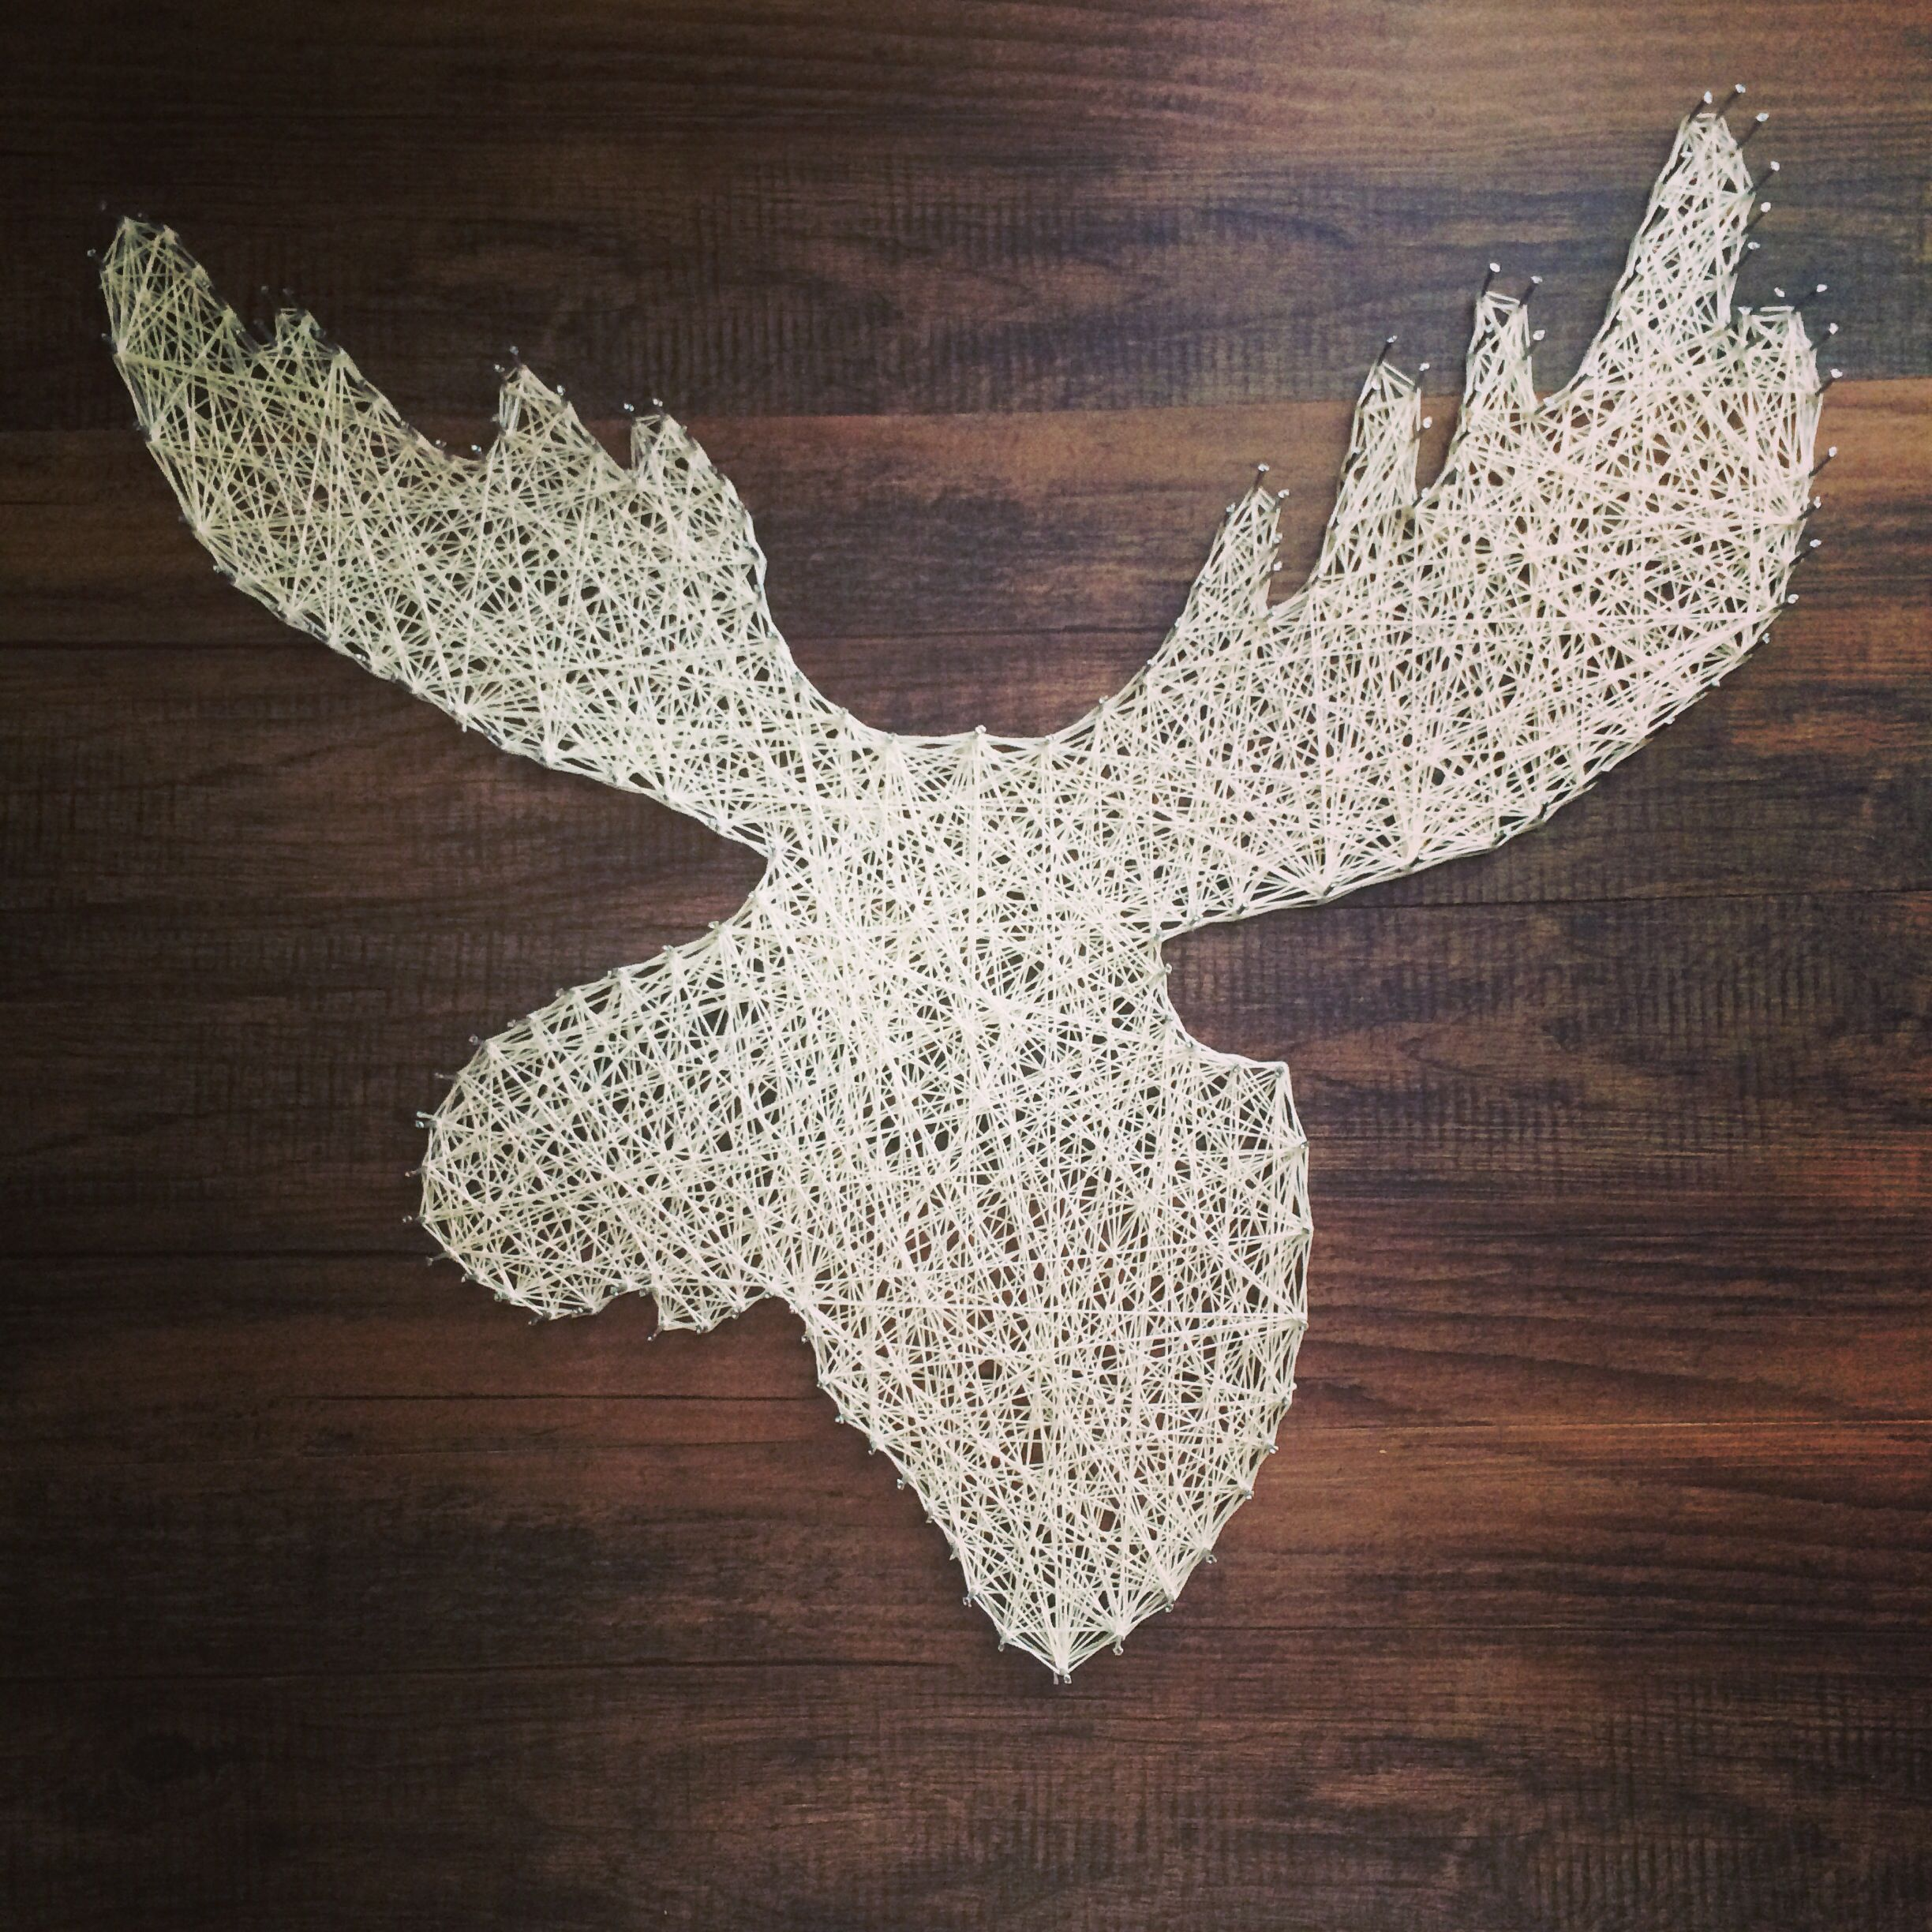 Seniors Oh Canada! String art variations. Can give